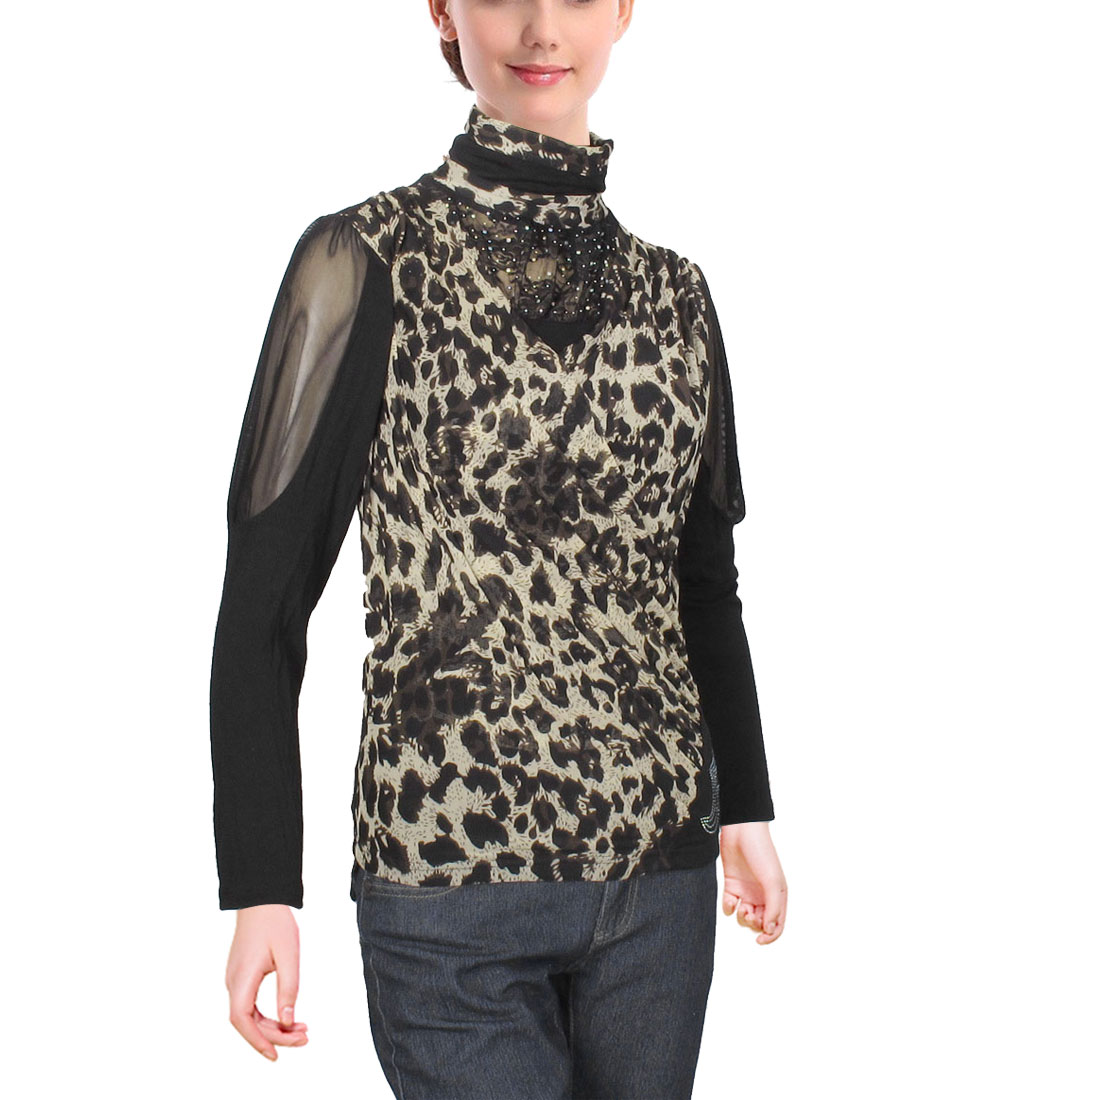 Leopard Pattern Rhinestone Detail Pullover Shirt Tops Black for Ladies XS